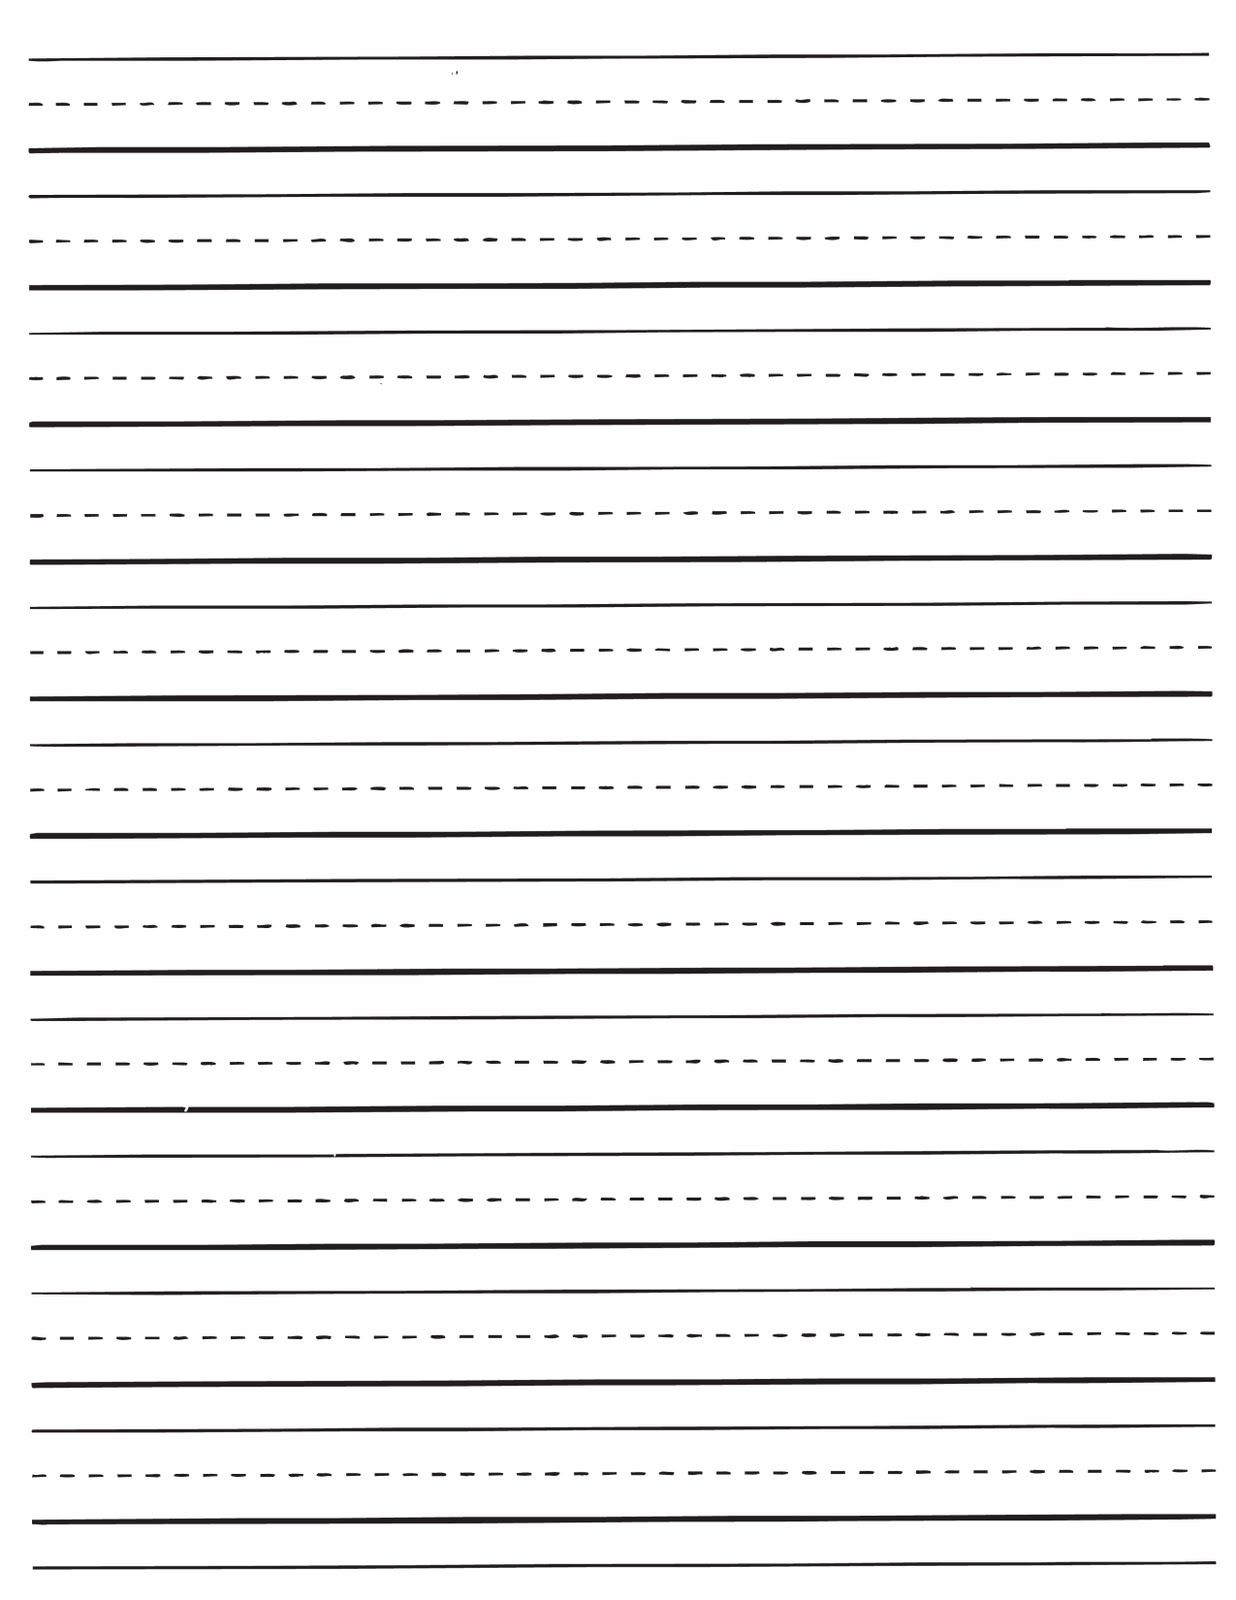 Lined Paper For Kids 3